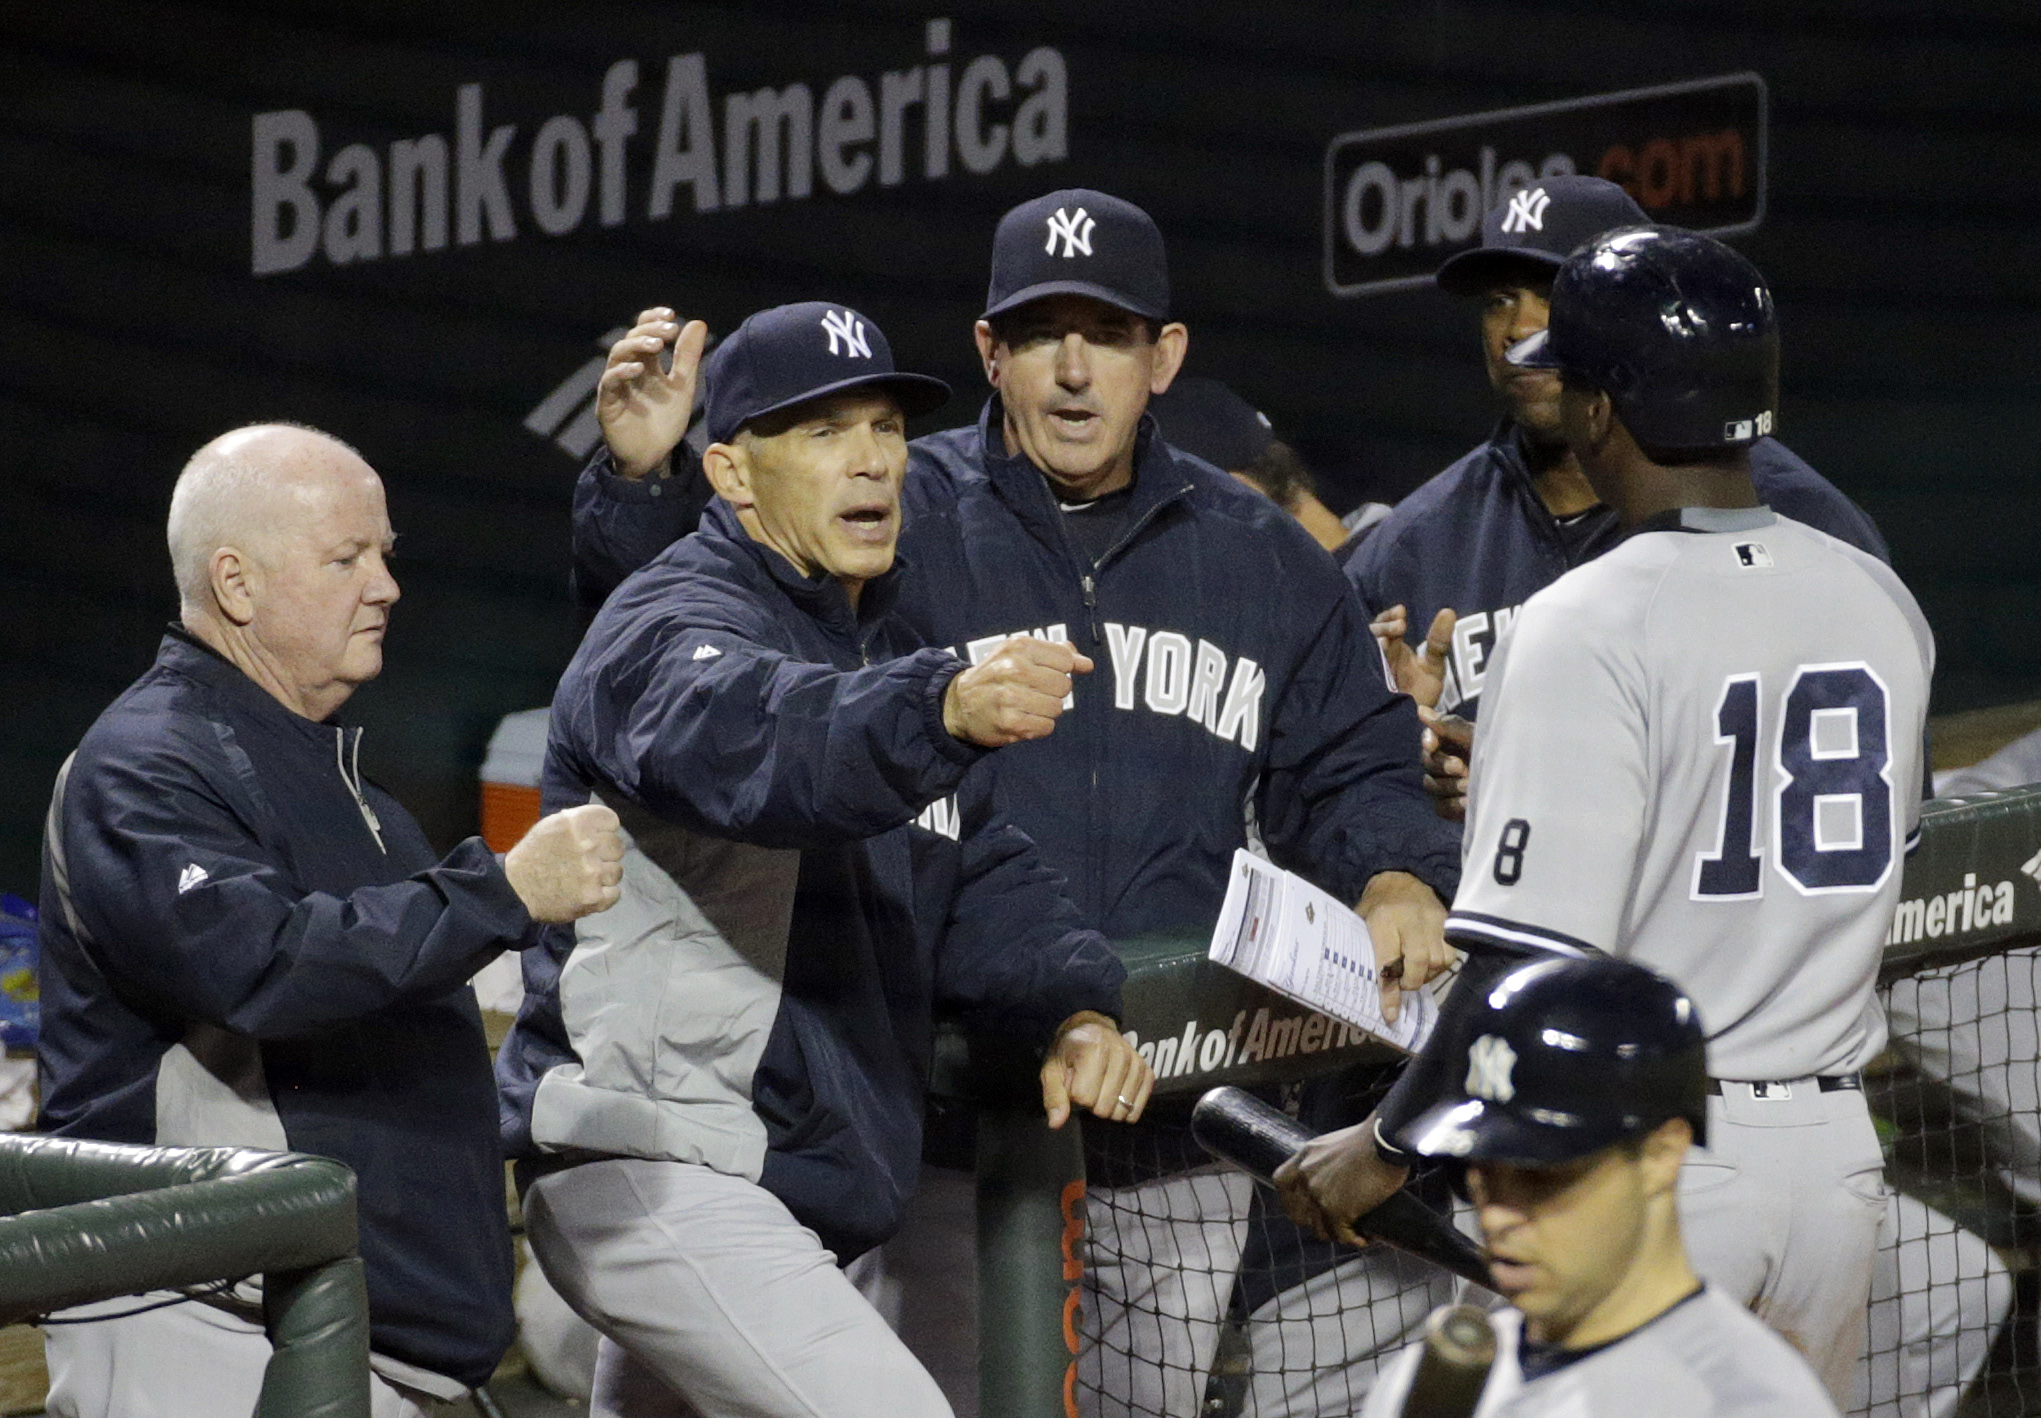 New York Yankees manager Joe Girardi, second from left, greets Didi Gregorius (18) after he scored when teammate Brett Gardner was hit by a pitch with the bases loaded in the eighth inning of a baseball game against the Baltimore Orioles in Baltimore, Wed